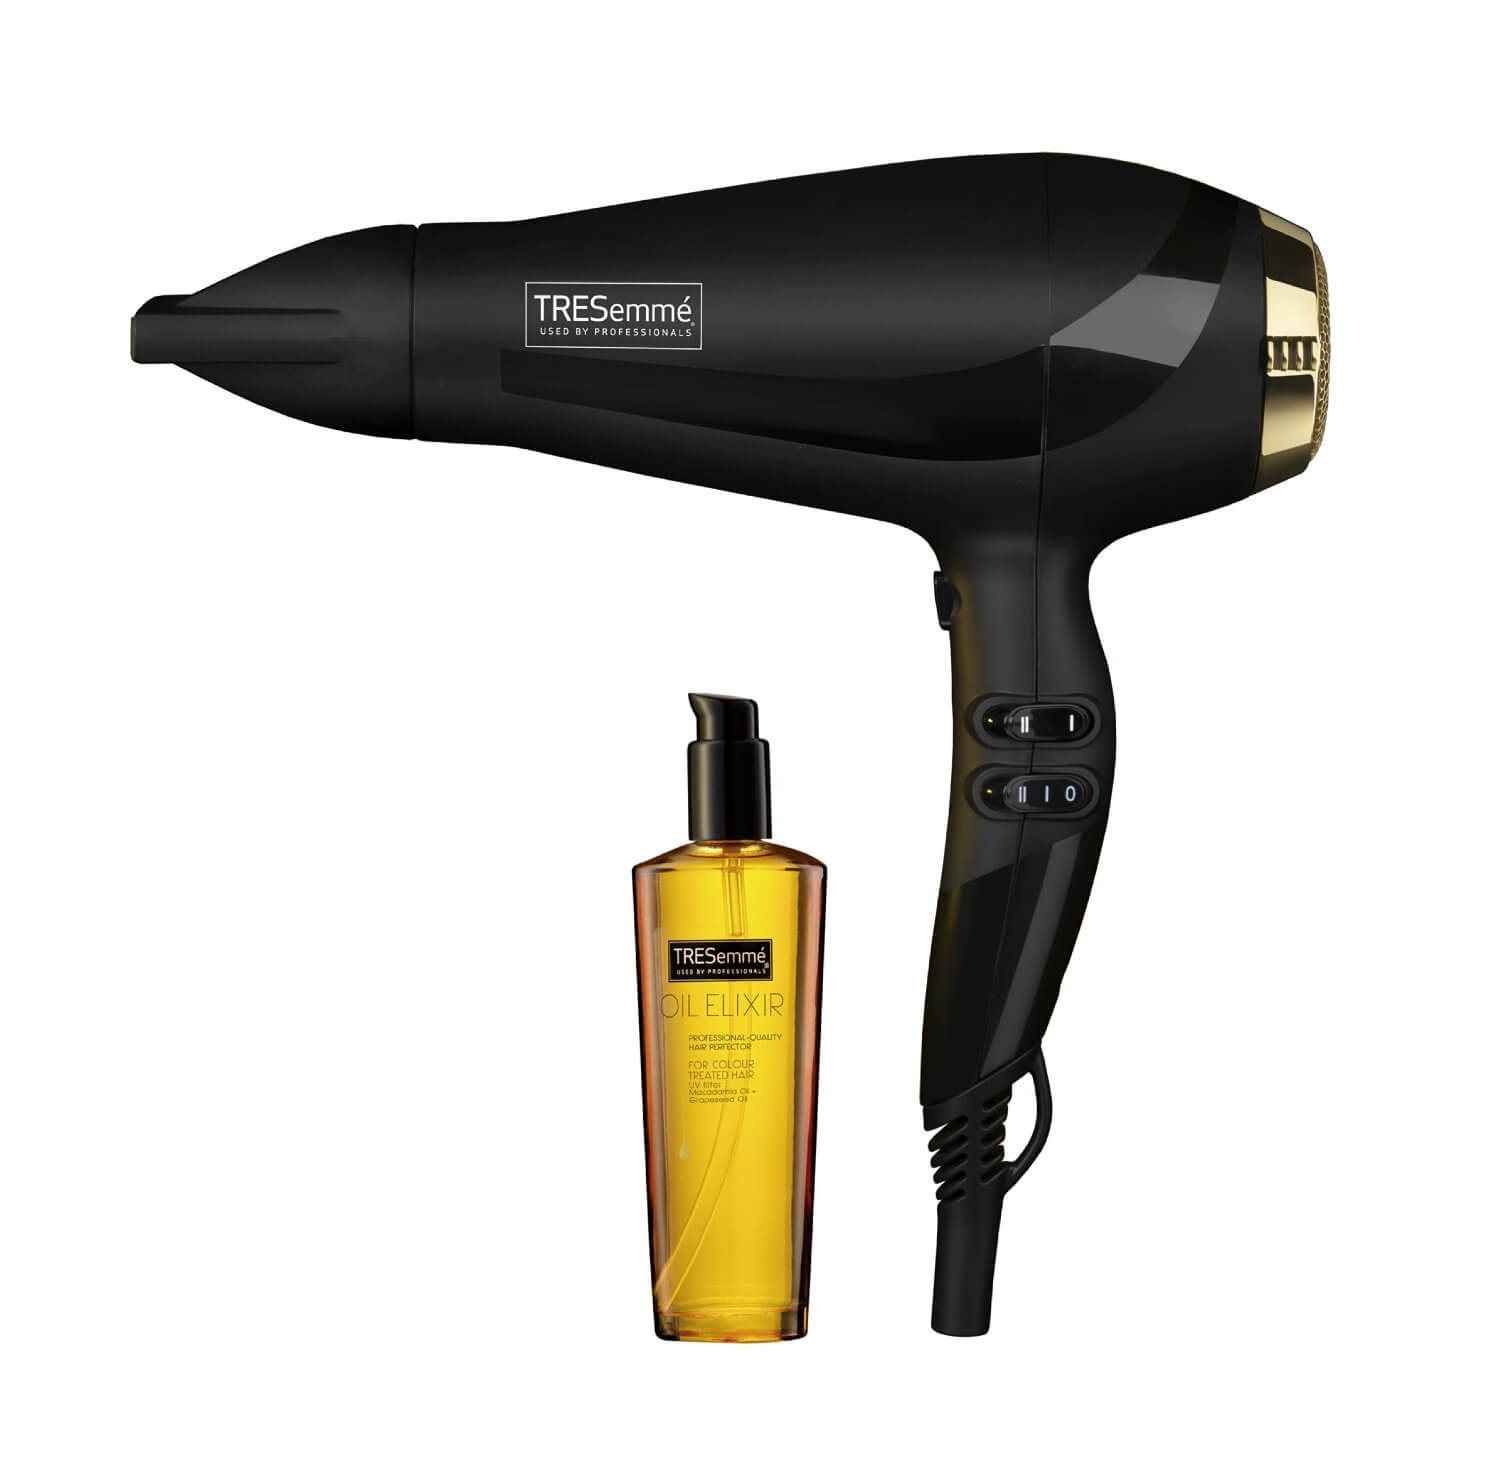 Tresemme Hair Dryer Review Best Of 2017 2018